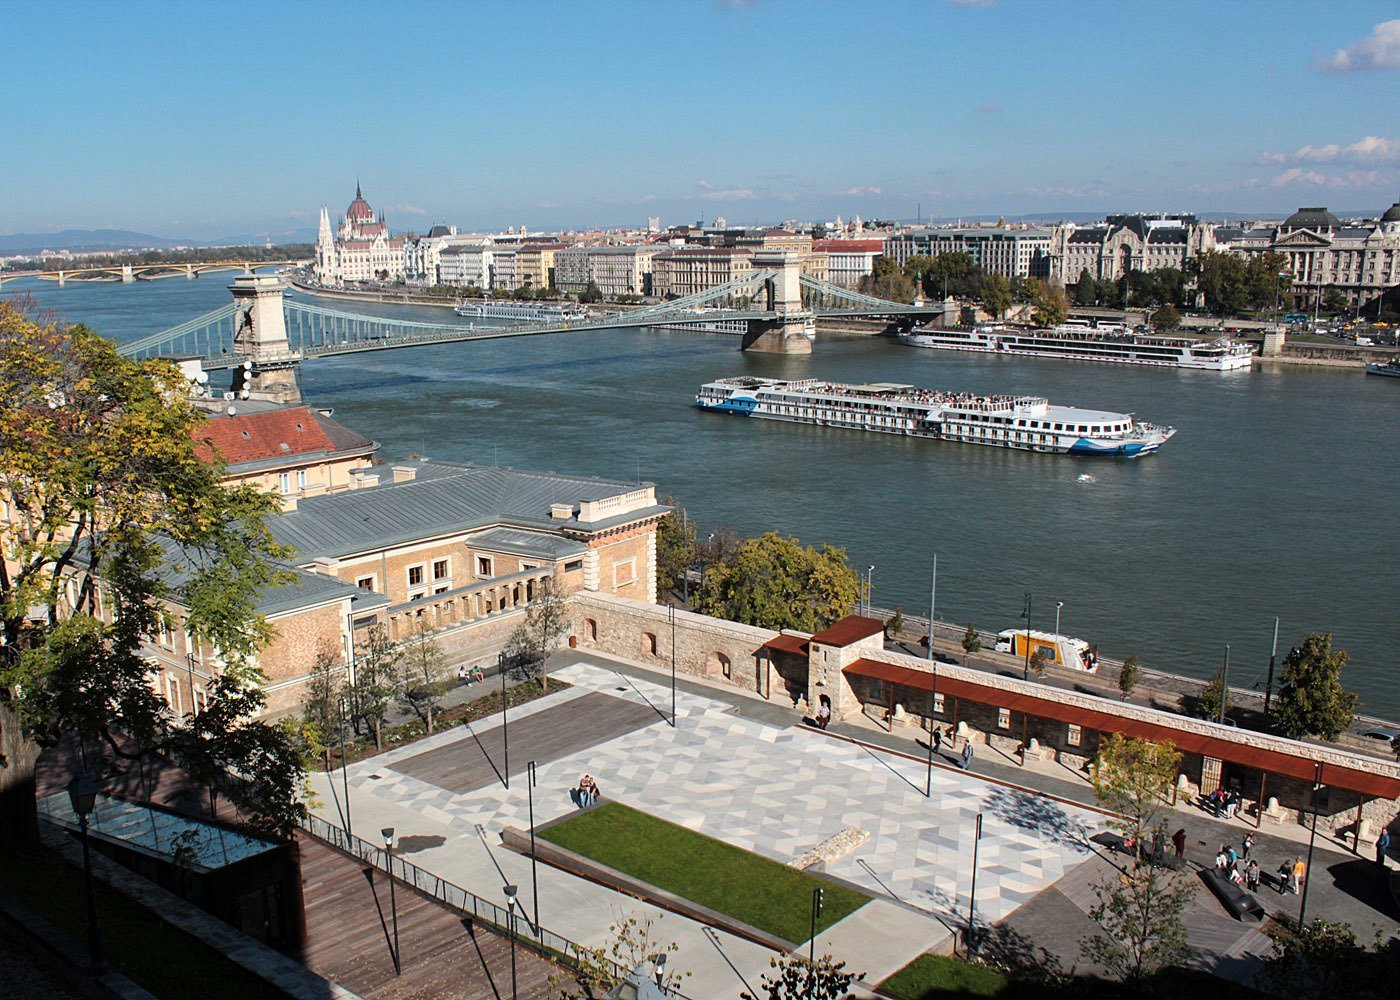 1200 euros per square metre – the real estate market has gone crazy in Budapest